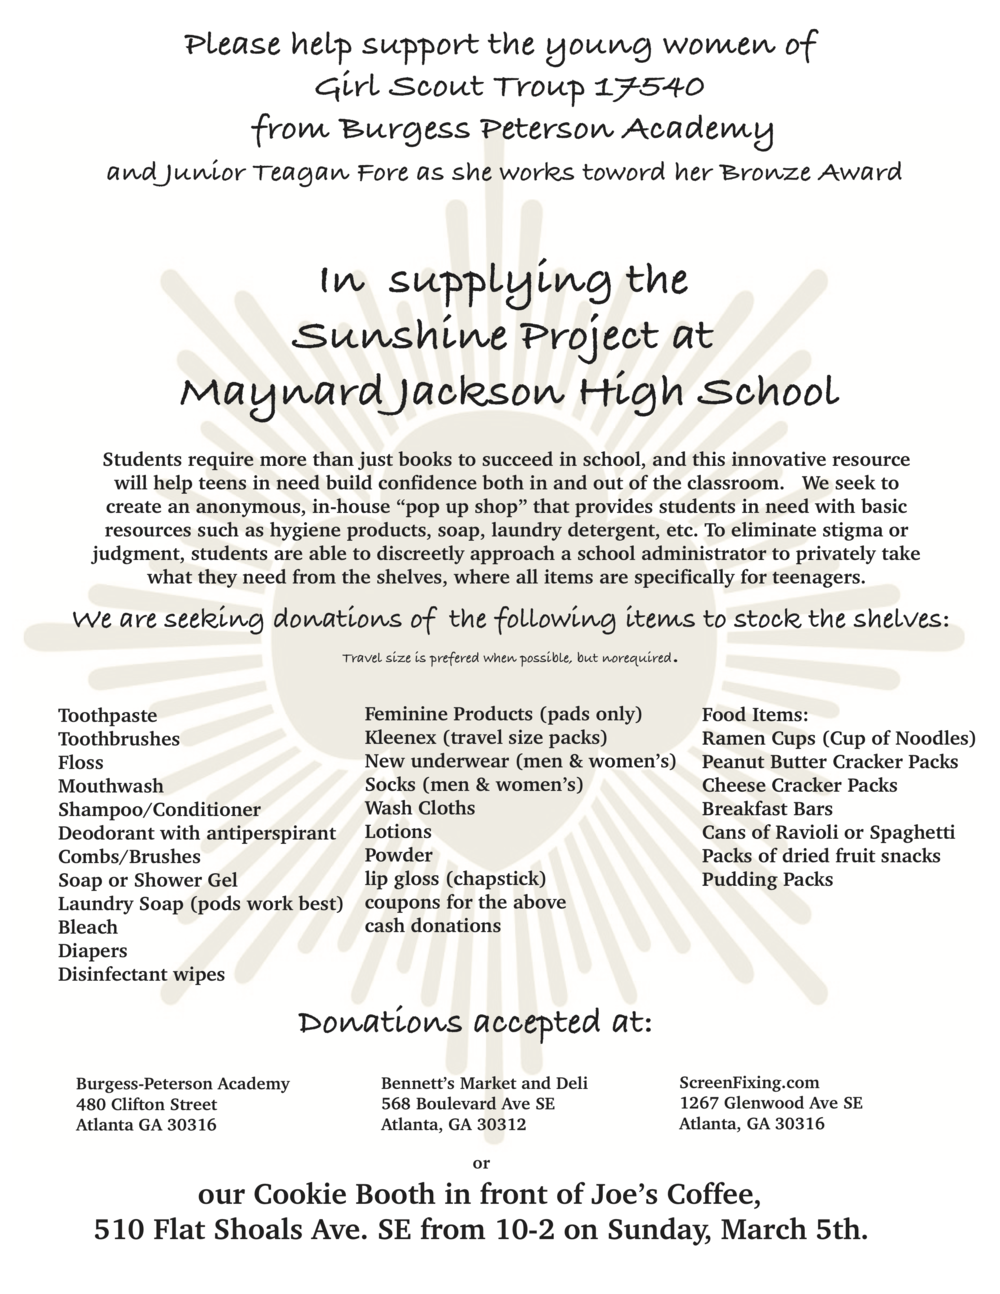 Sunshine Project at Maynard Jackson High School